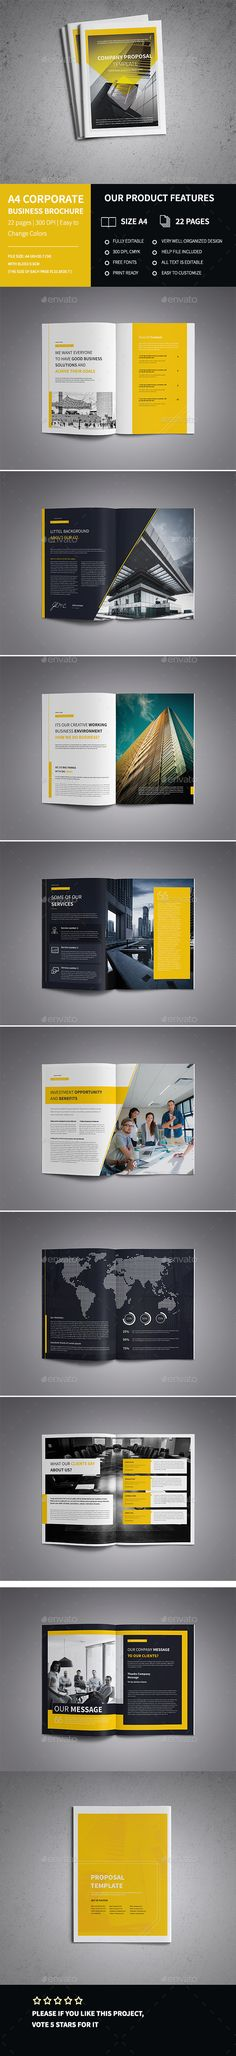 E-Book Corporate | Template, Brochures and Beauty logo